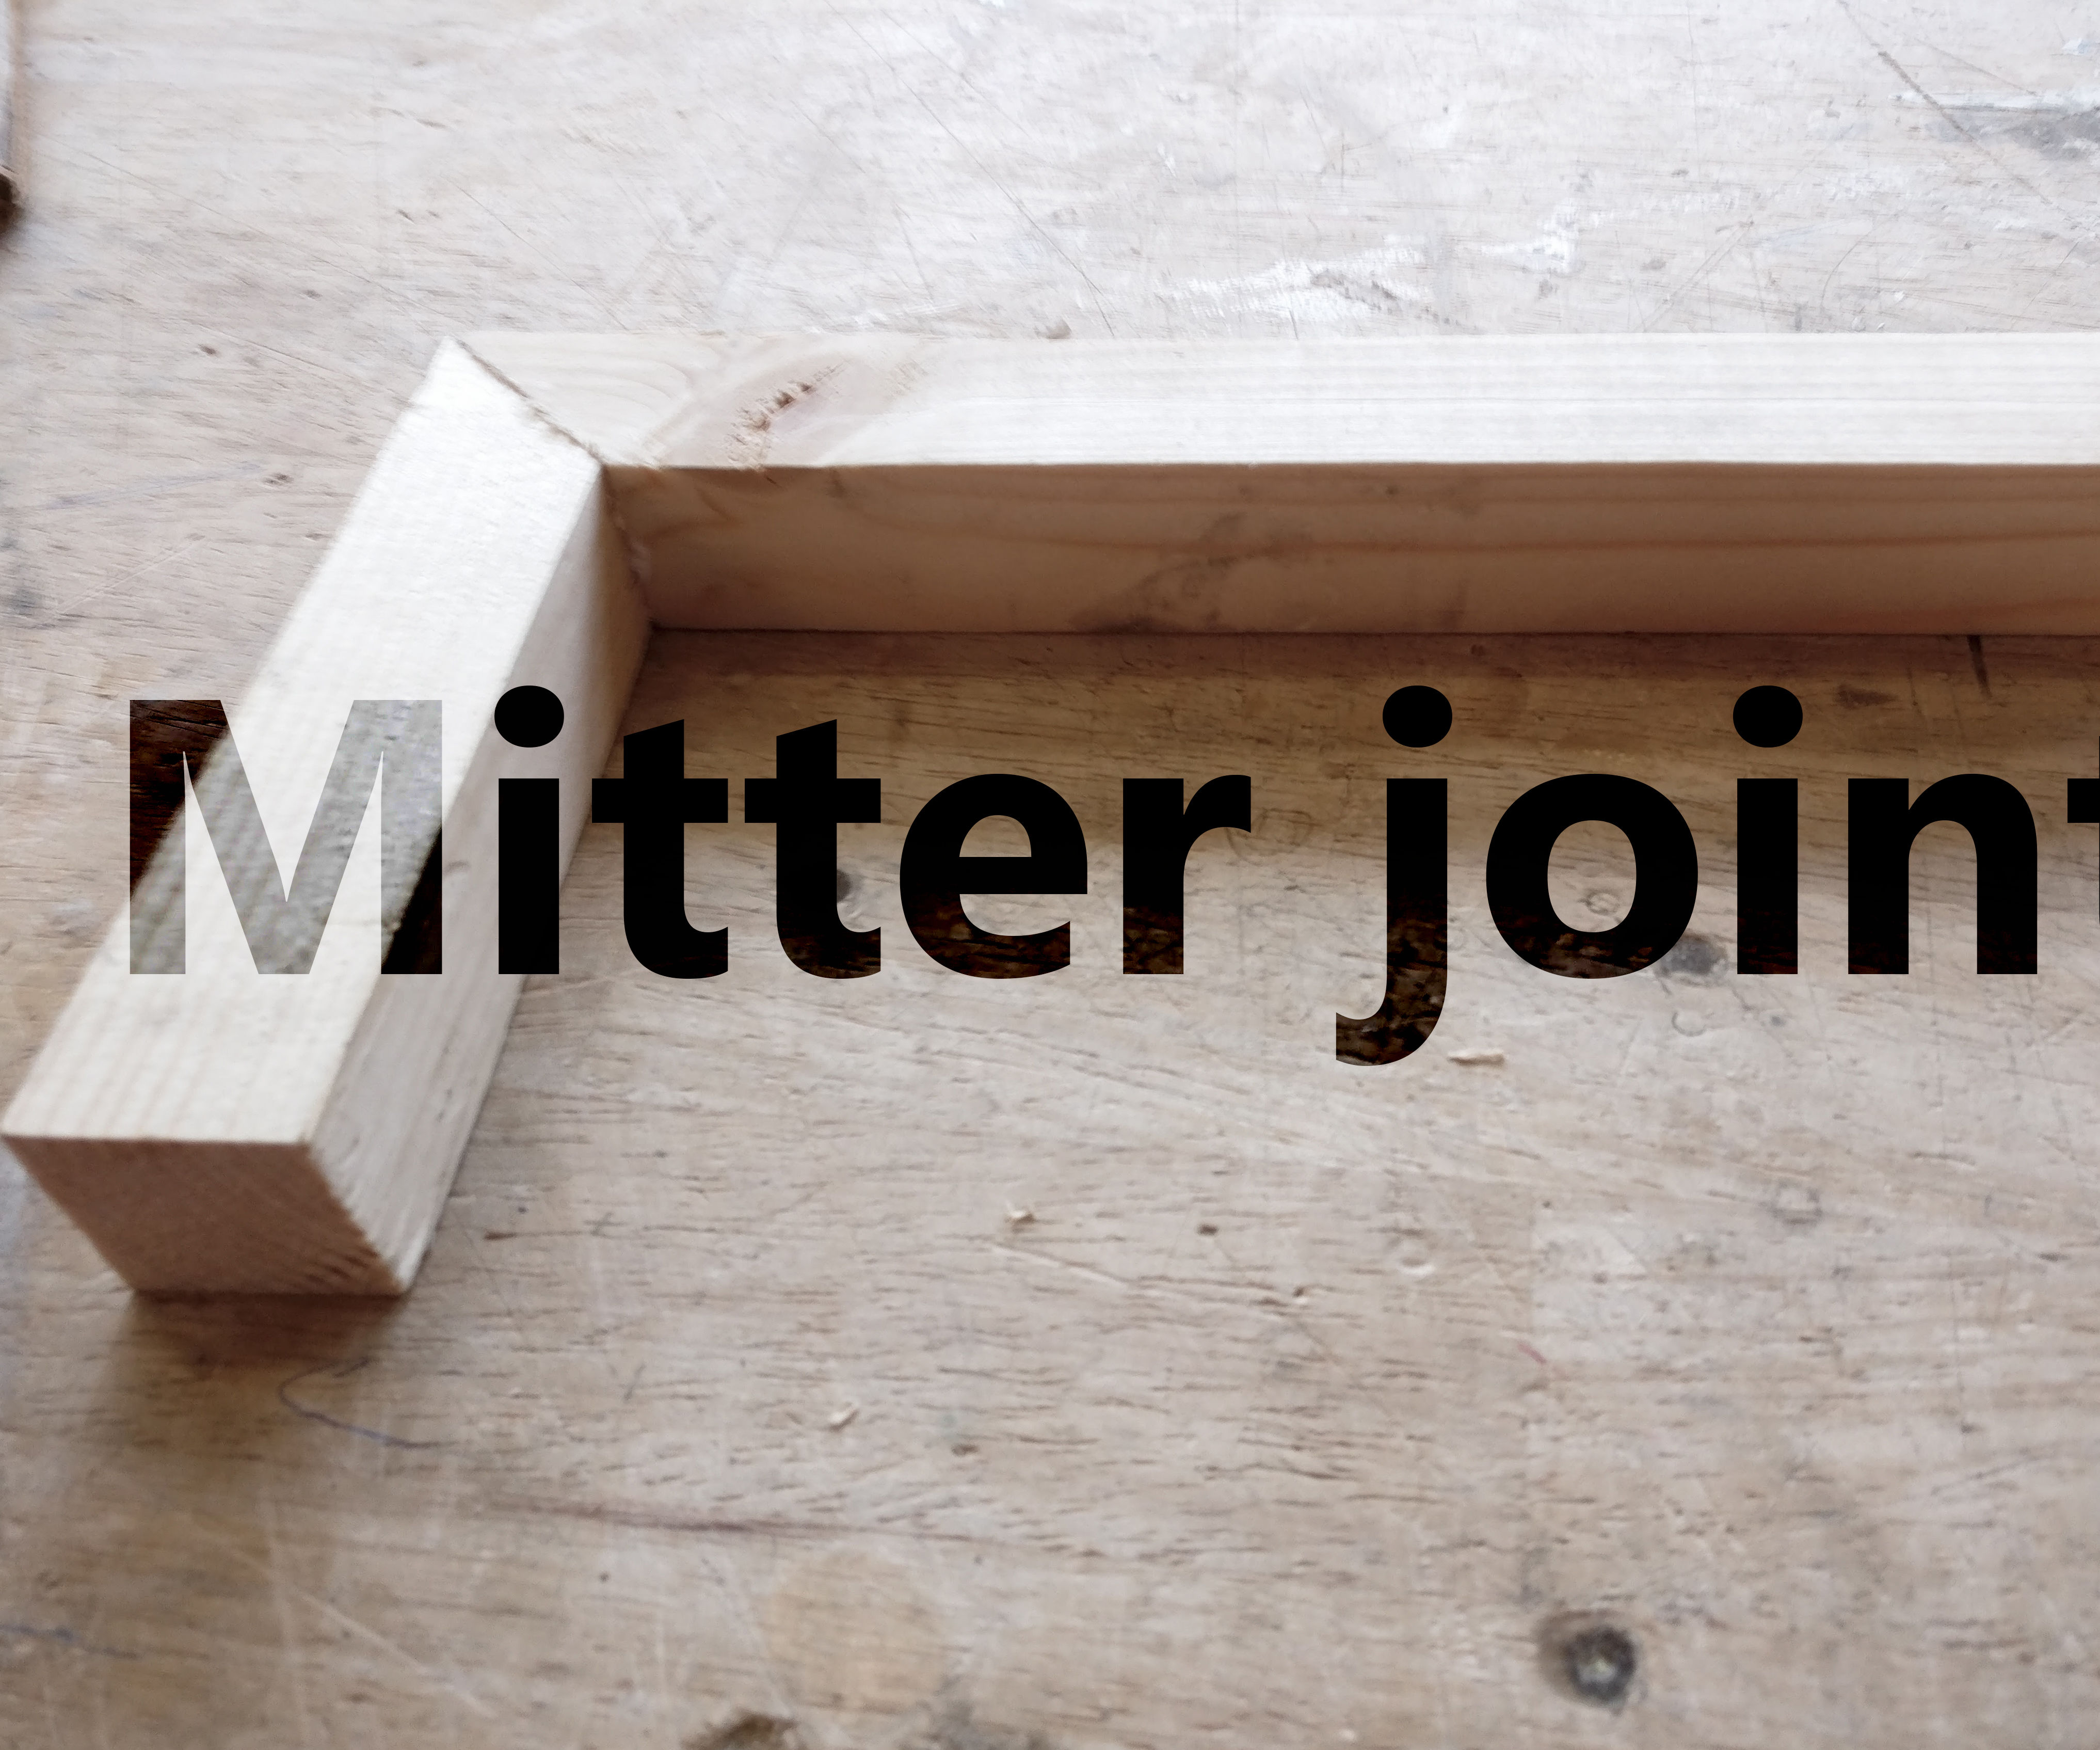 Invisible Glue Joints: Mitter Joint (werkplaatsidc)